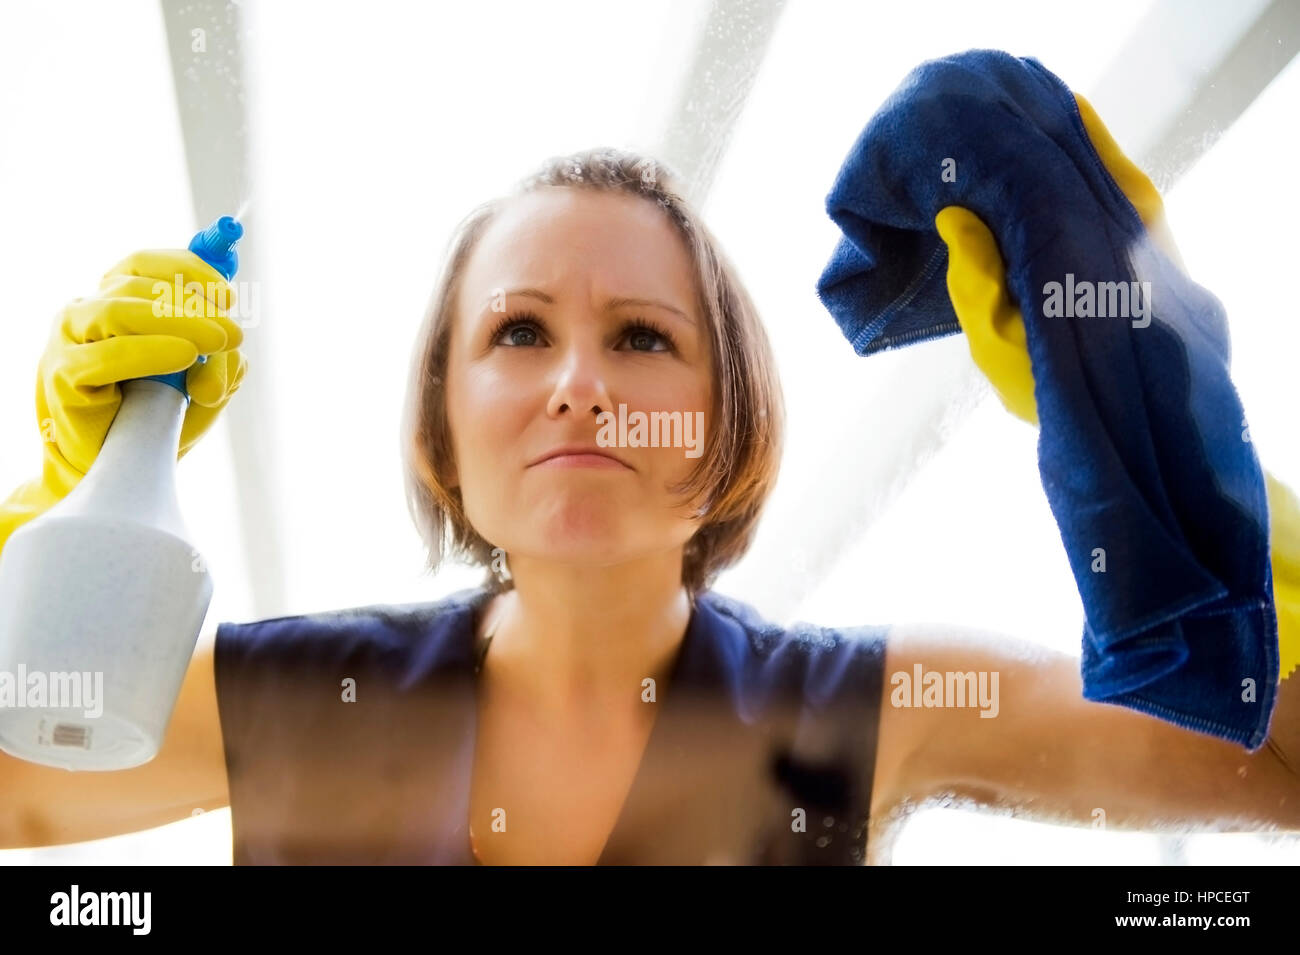 Model released , Junge Putzfrau beim Fensterputzen - woman cleans the window Stock Photo